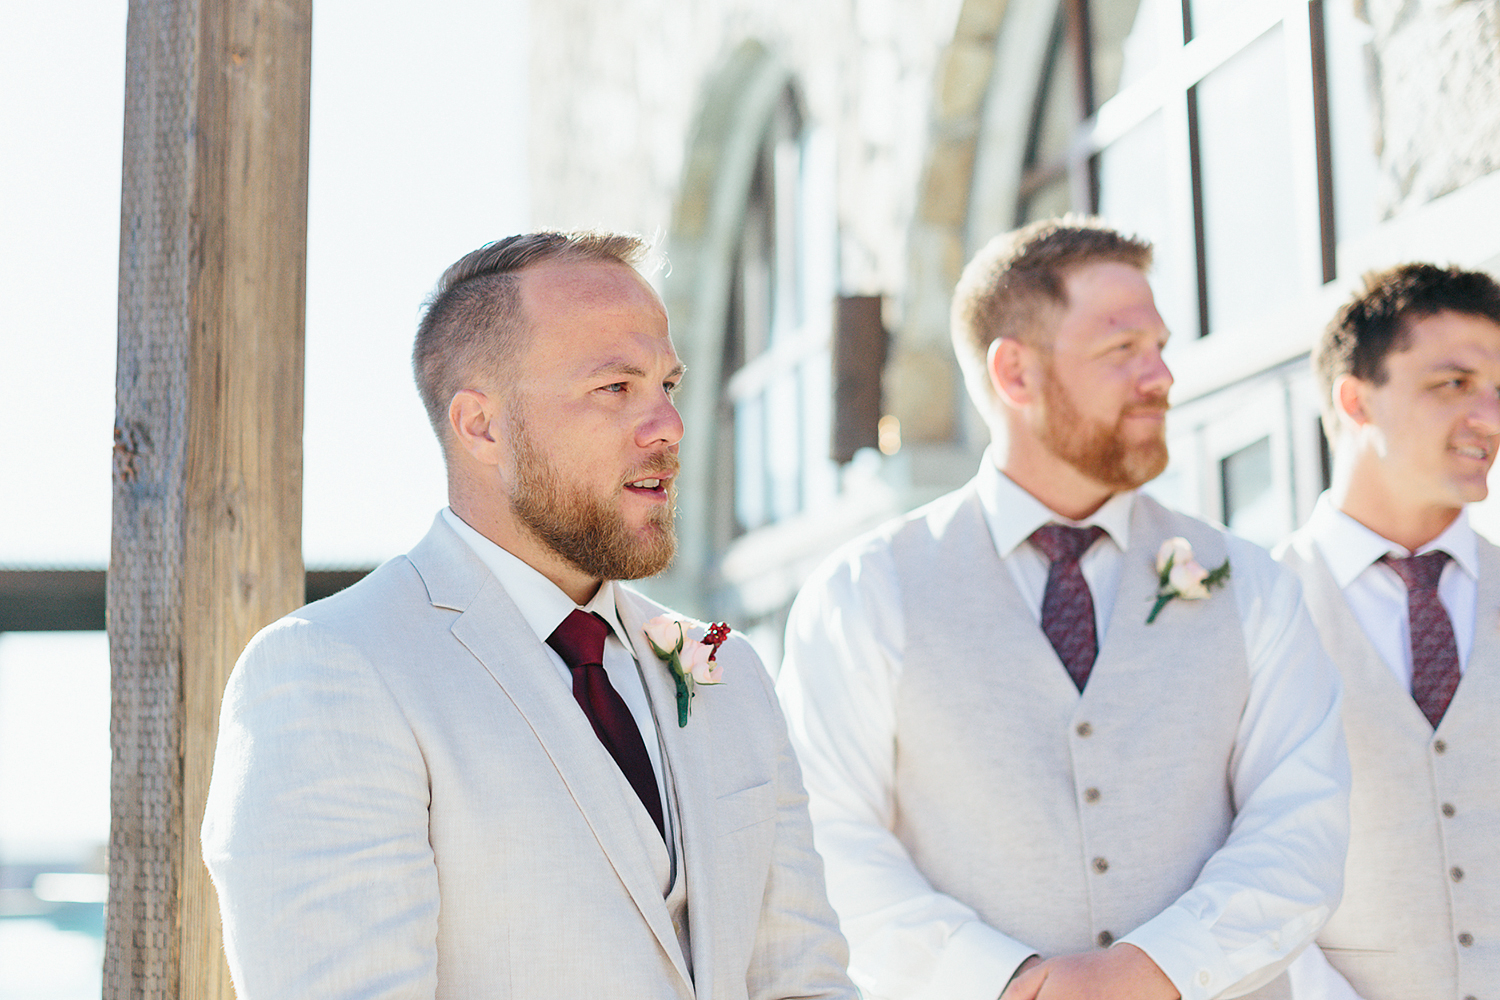 cabo-san-lucas-wedding-travelling-destination-wedding-photographer-toronto-wedding-photographers-3b-photography-hipster-trendy-documentary-style-mexico-wedding-ceremony-bride-walking-down-the-isle-groom-crying-emotional.jpg